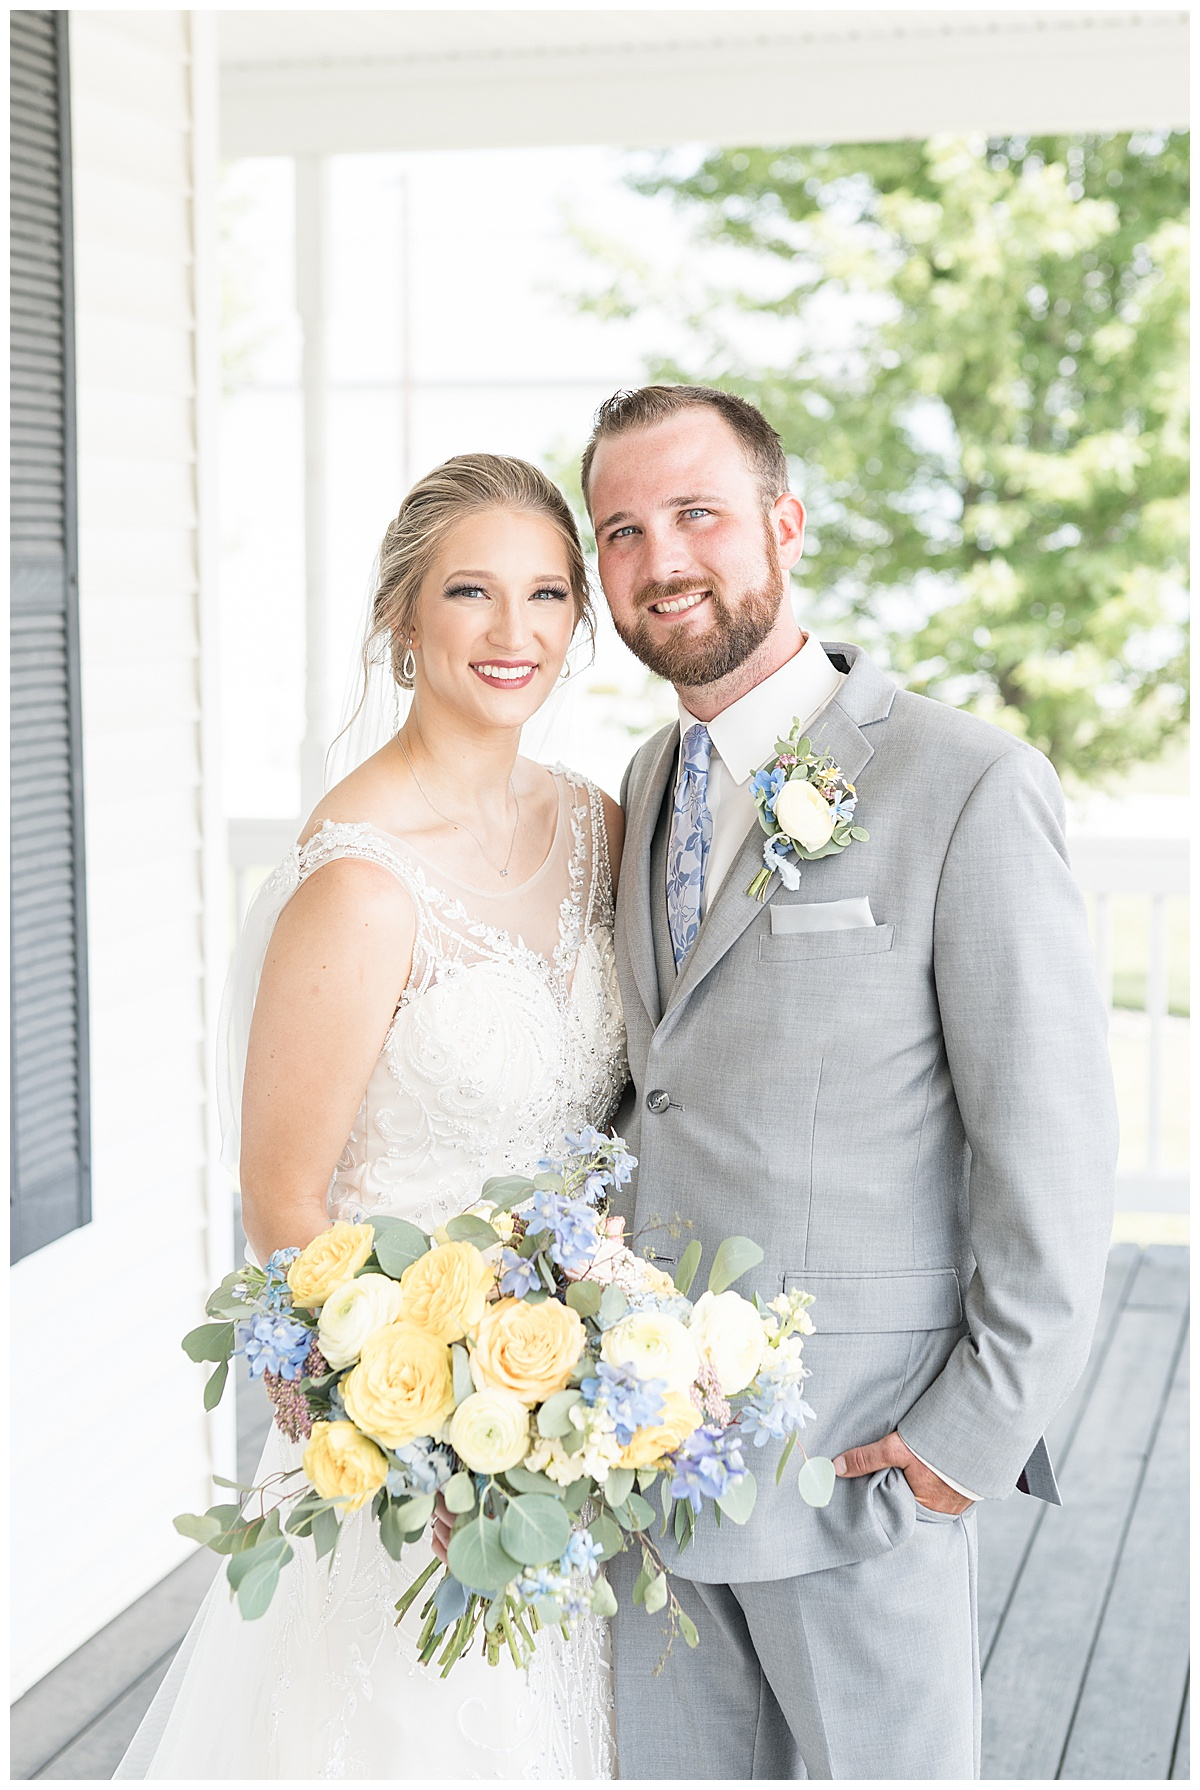 Bride and groom photos at Exploration Acres wedding in Lafayette, Indiana